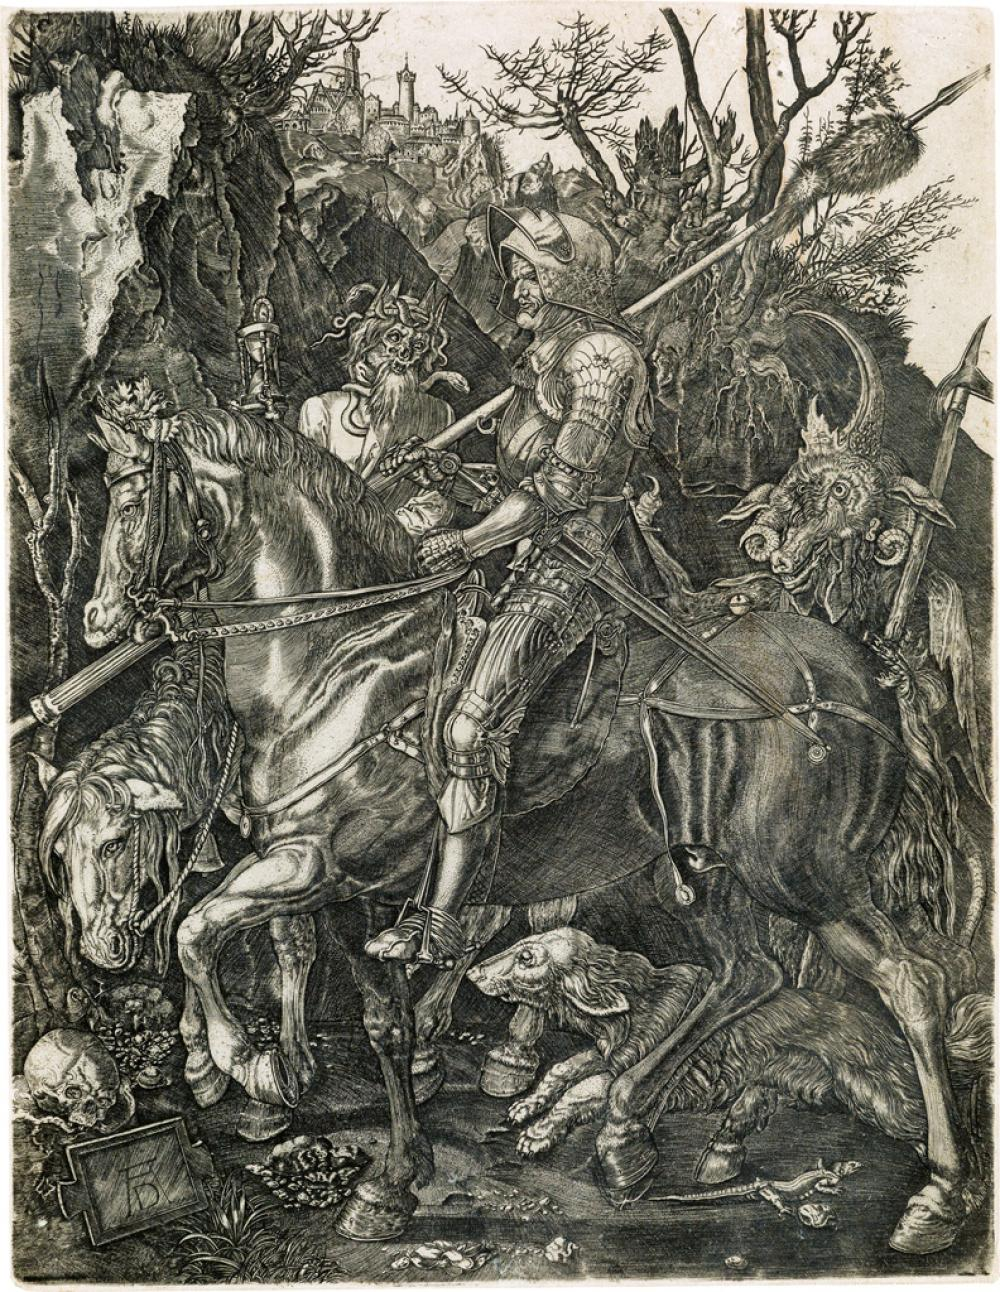 ALBRECHT DÜRER (after) Knight, Death and the Devil